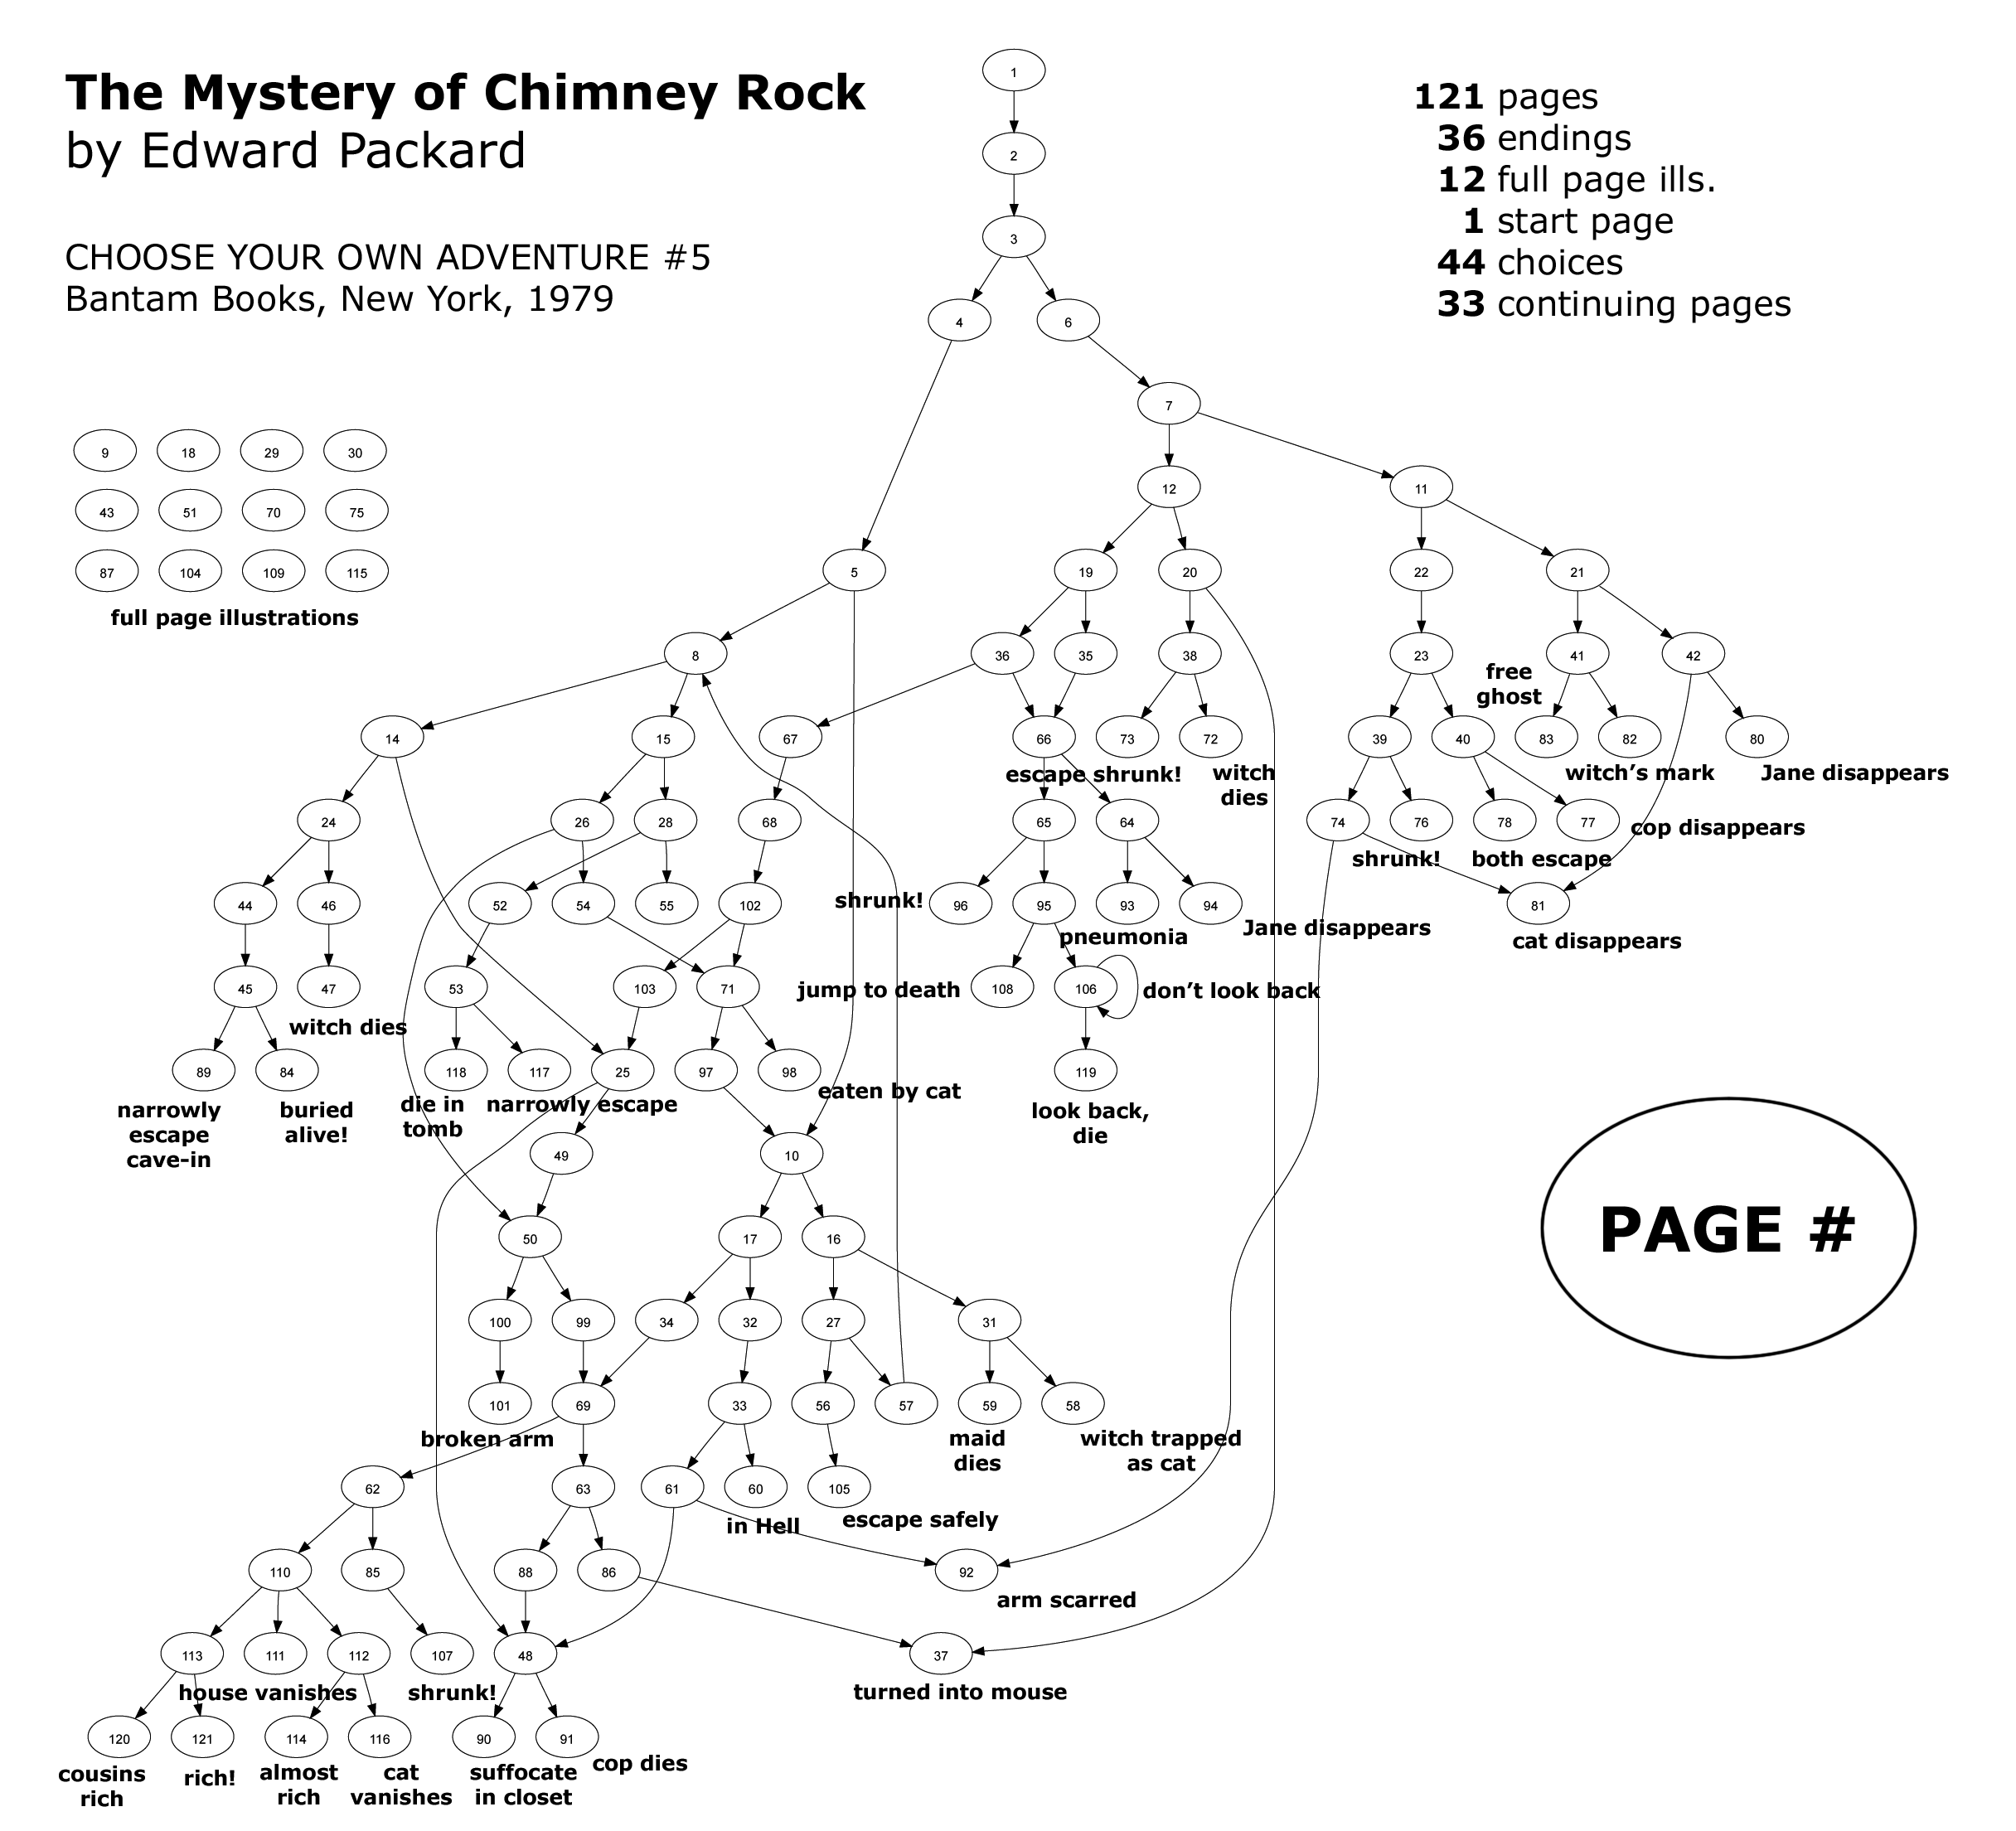 Directed Graph Of Edward Packard S The Mystery Of Chimney